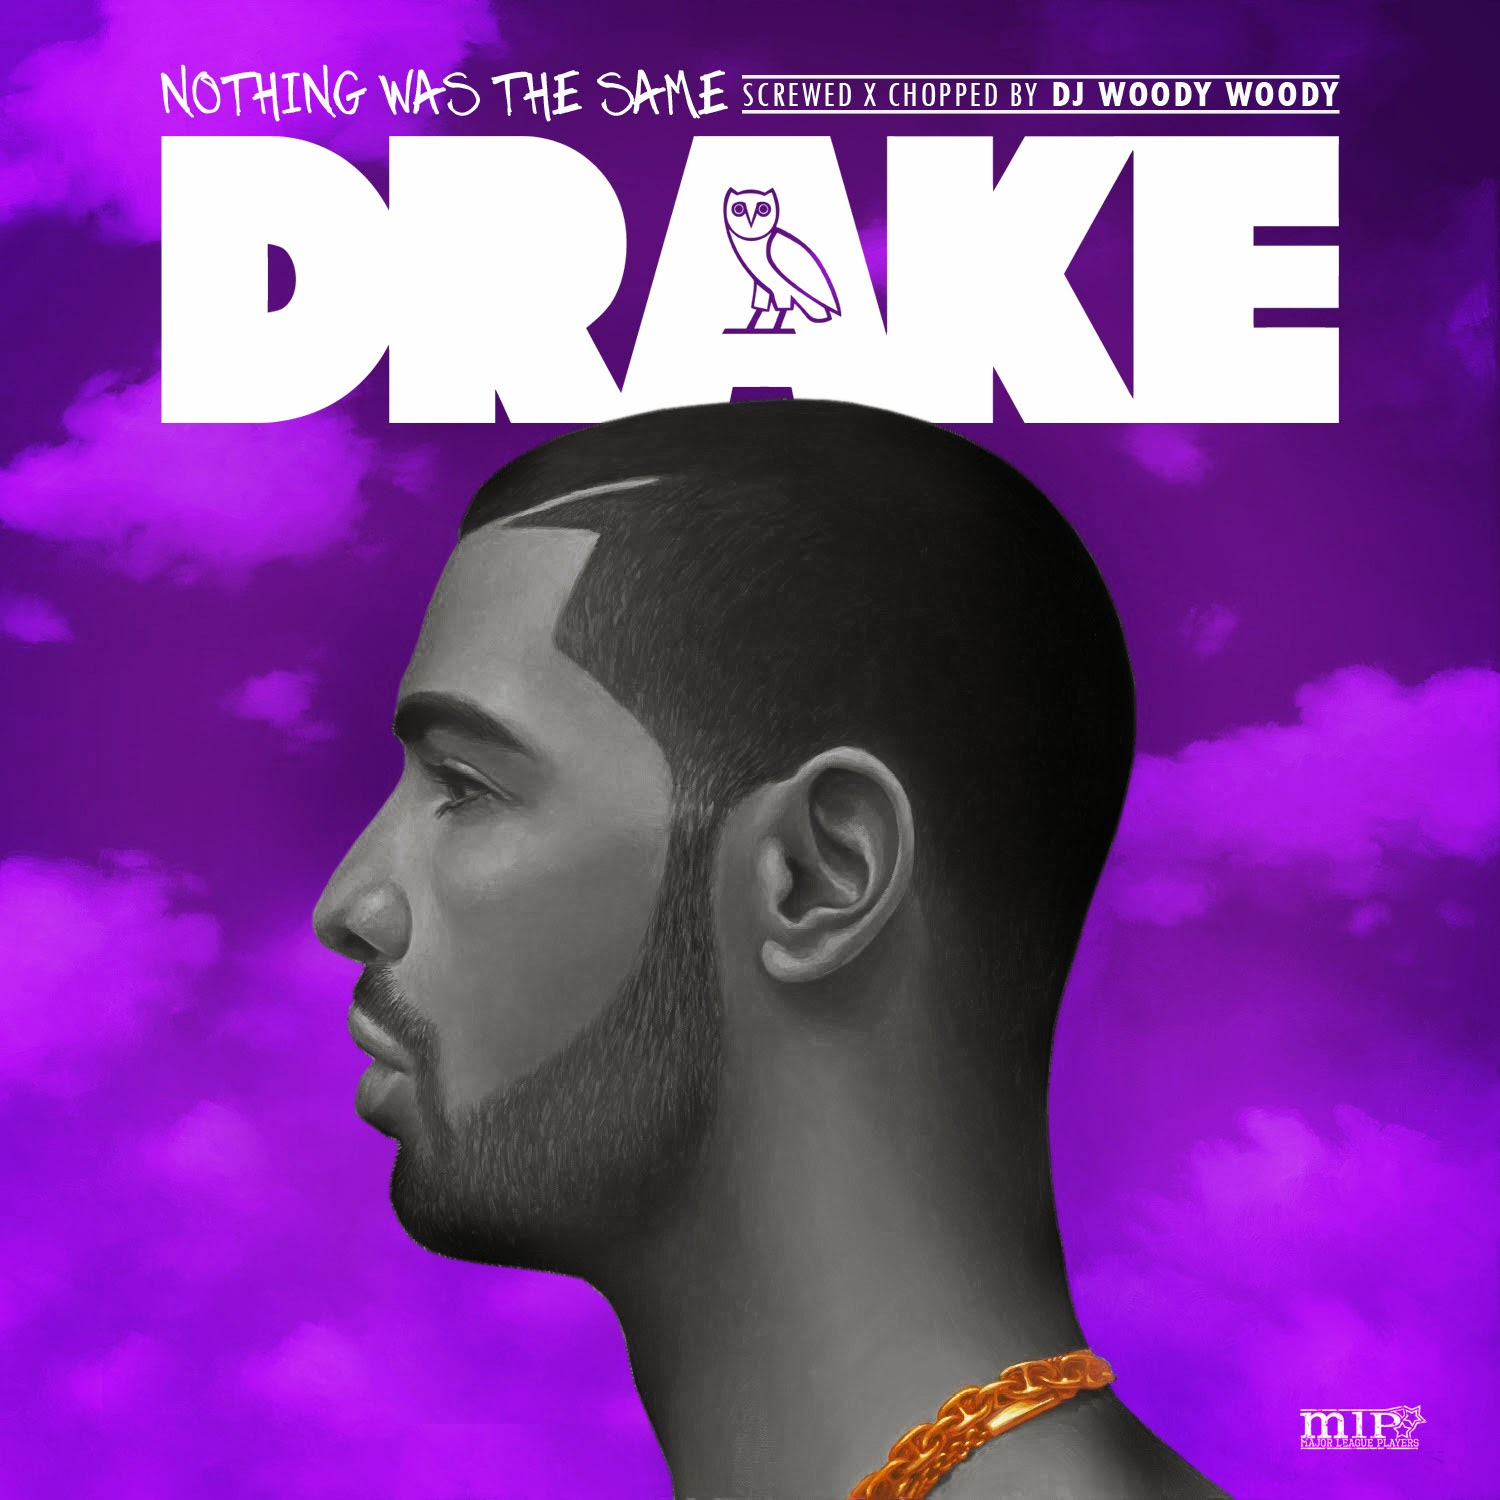 the gallery for gt drake nothing was the same album cover